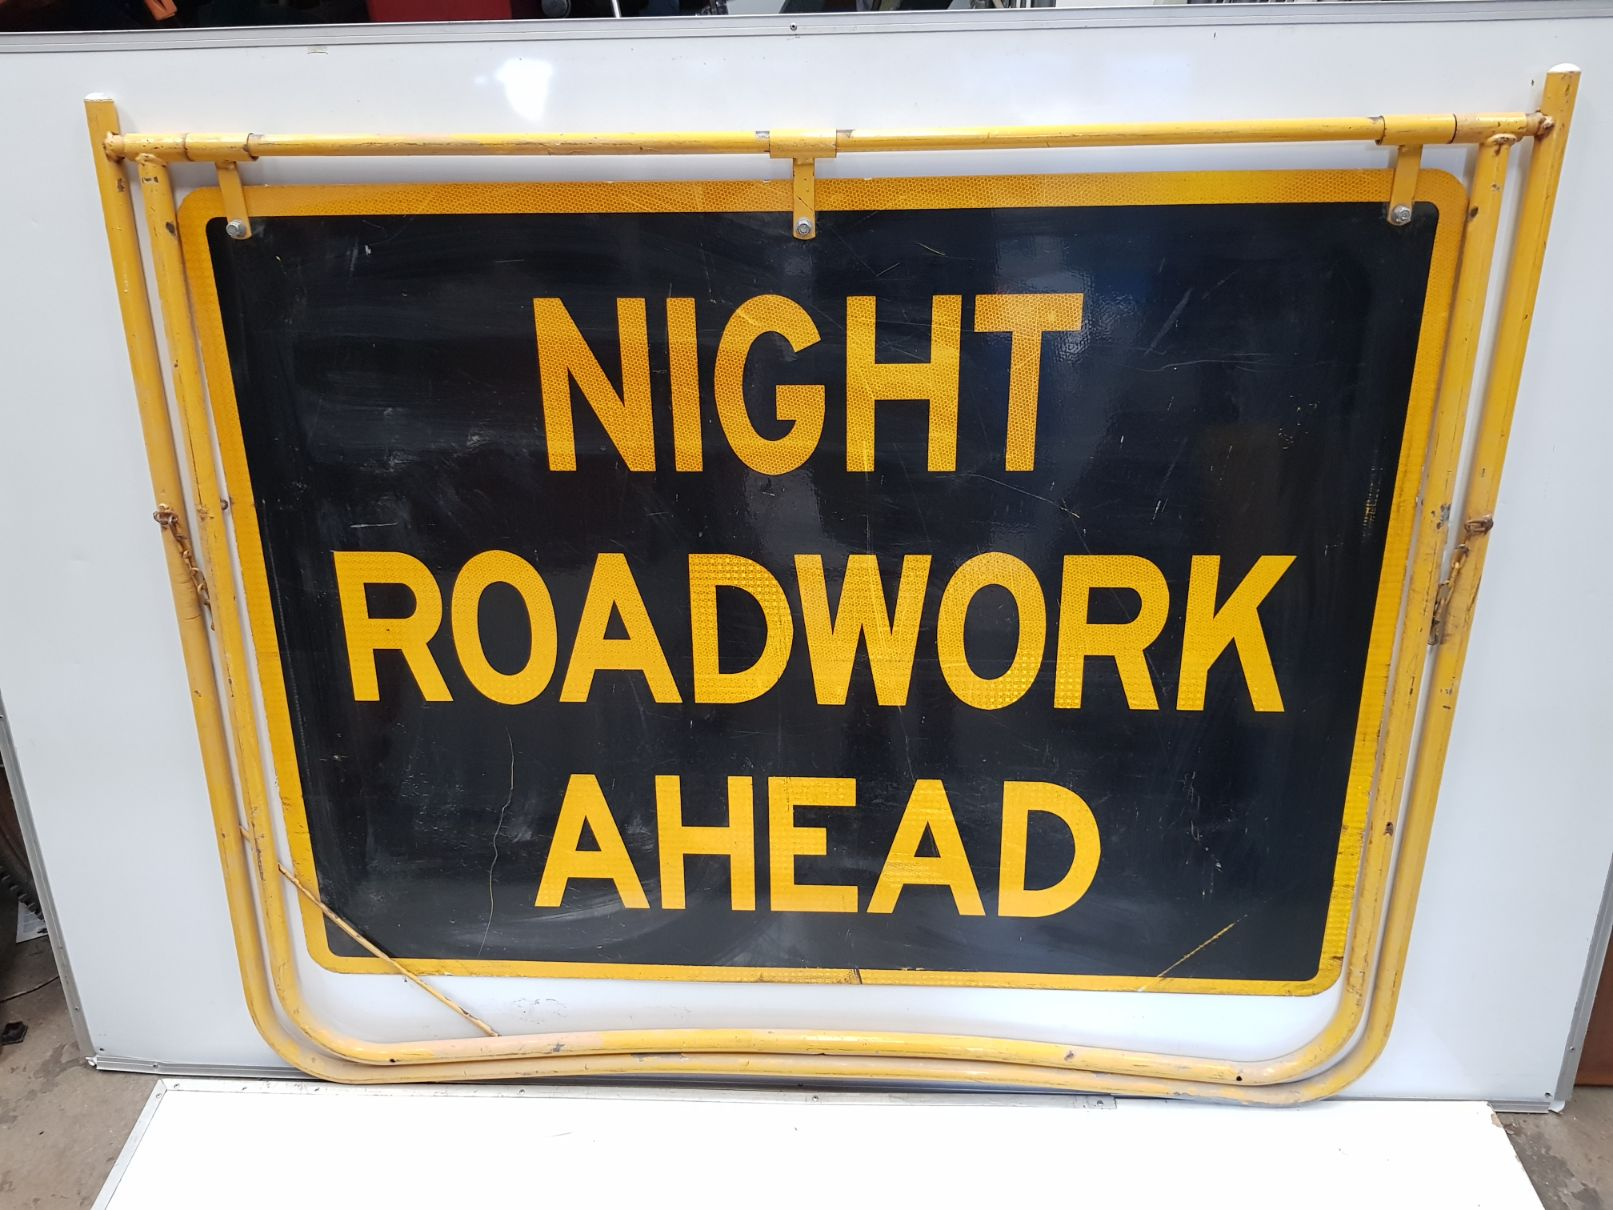 Night Roadwork Ahead Swing Stand Sign.jpg